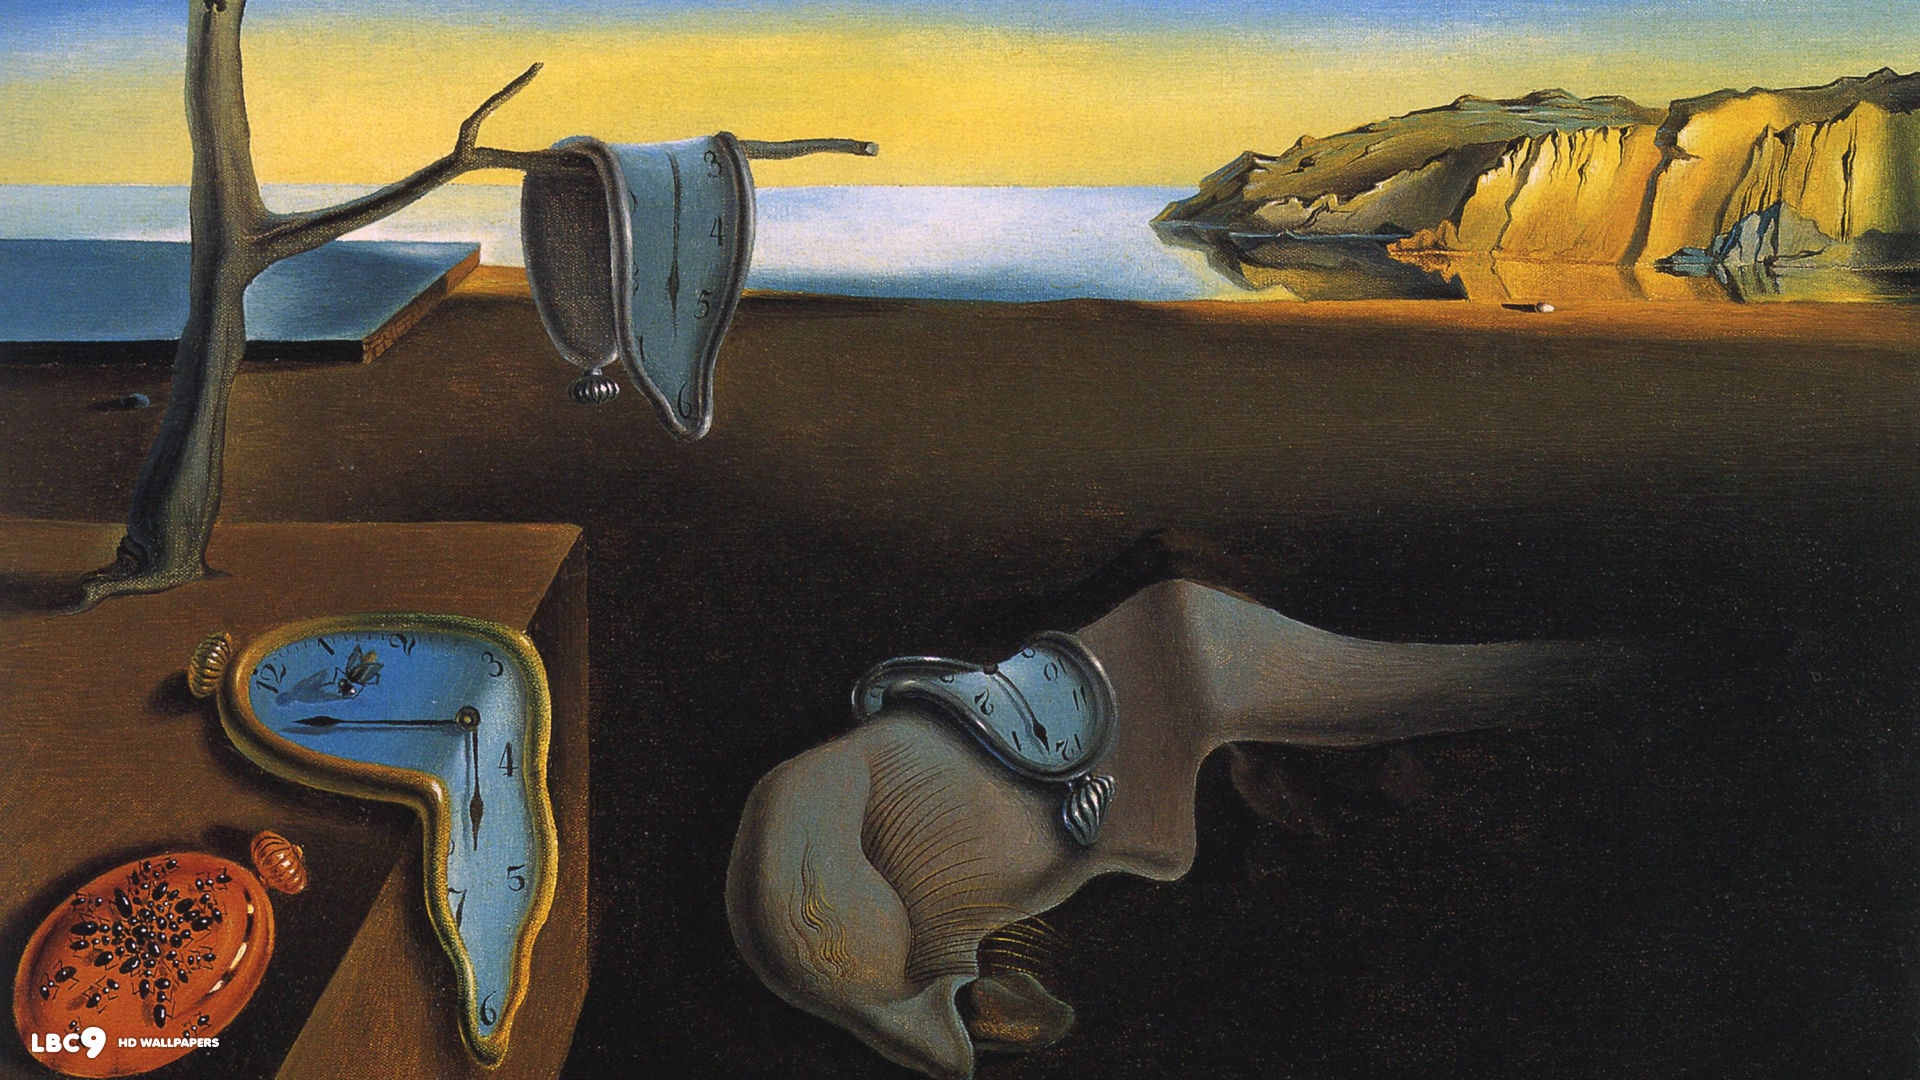 salvador dali the persistence of memory Salvador dali's the persistence of memory explained find out how the spanish surrealist went from penniless painter to toast of the nyc artworld in one single canvas.